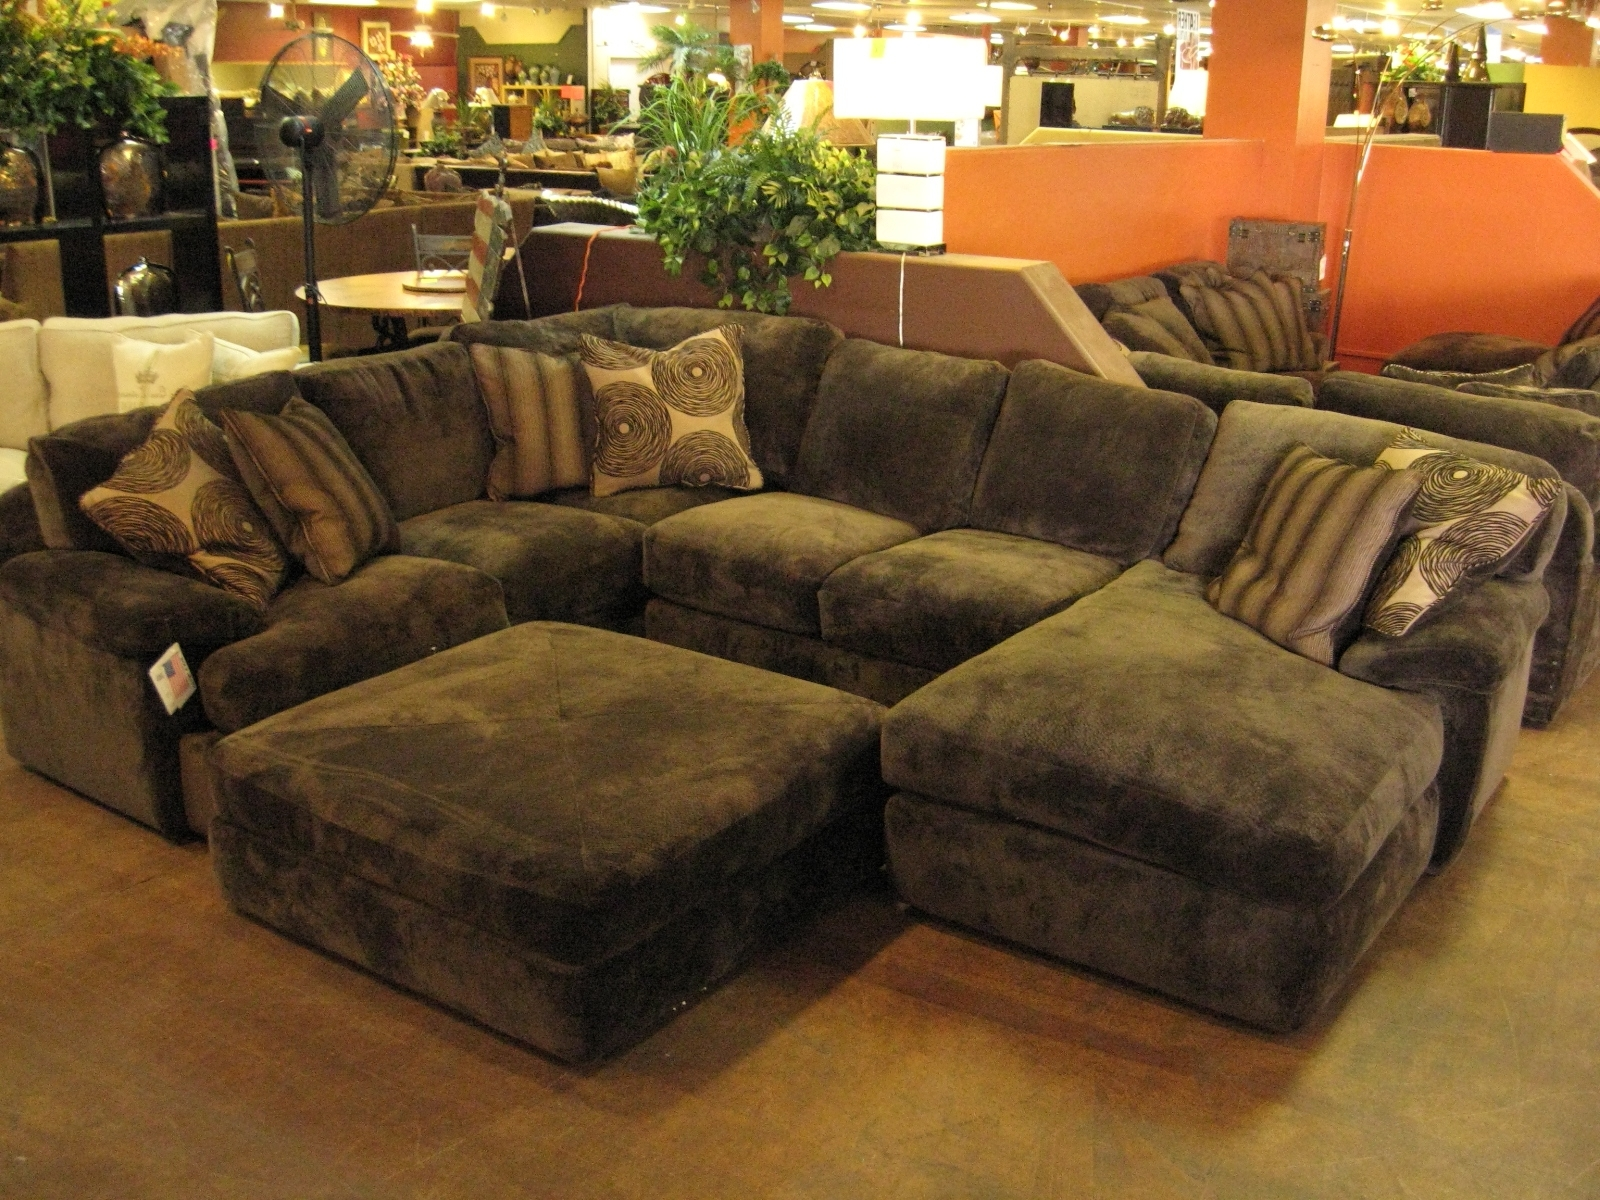 Seattle Sectional Sofas With Regard To Latest Deep Sectional Sofa With Chaise – Cleanupflorida (View 14 of 15)